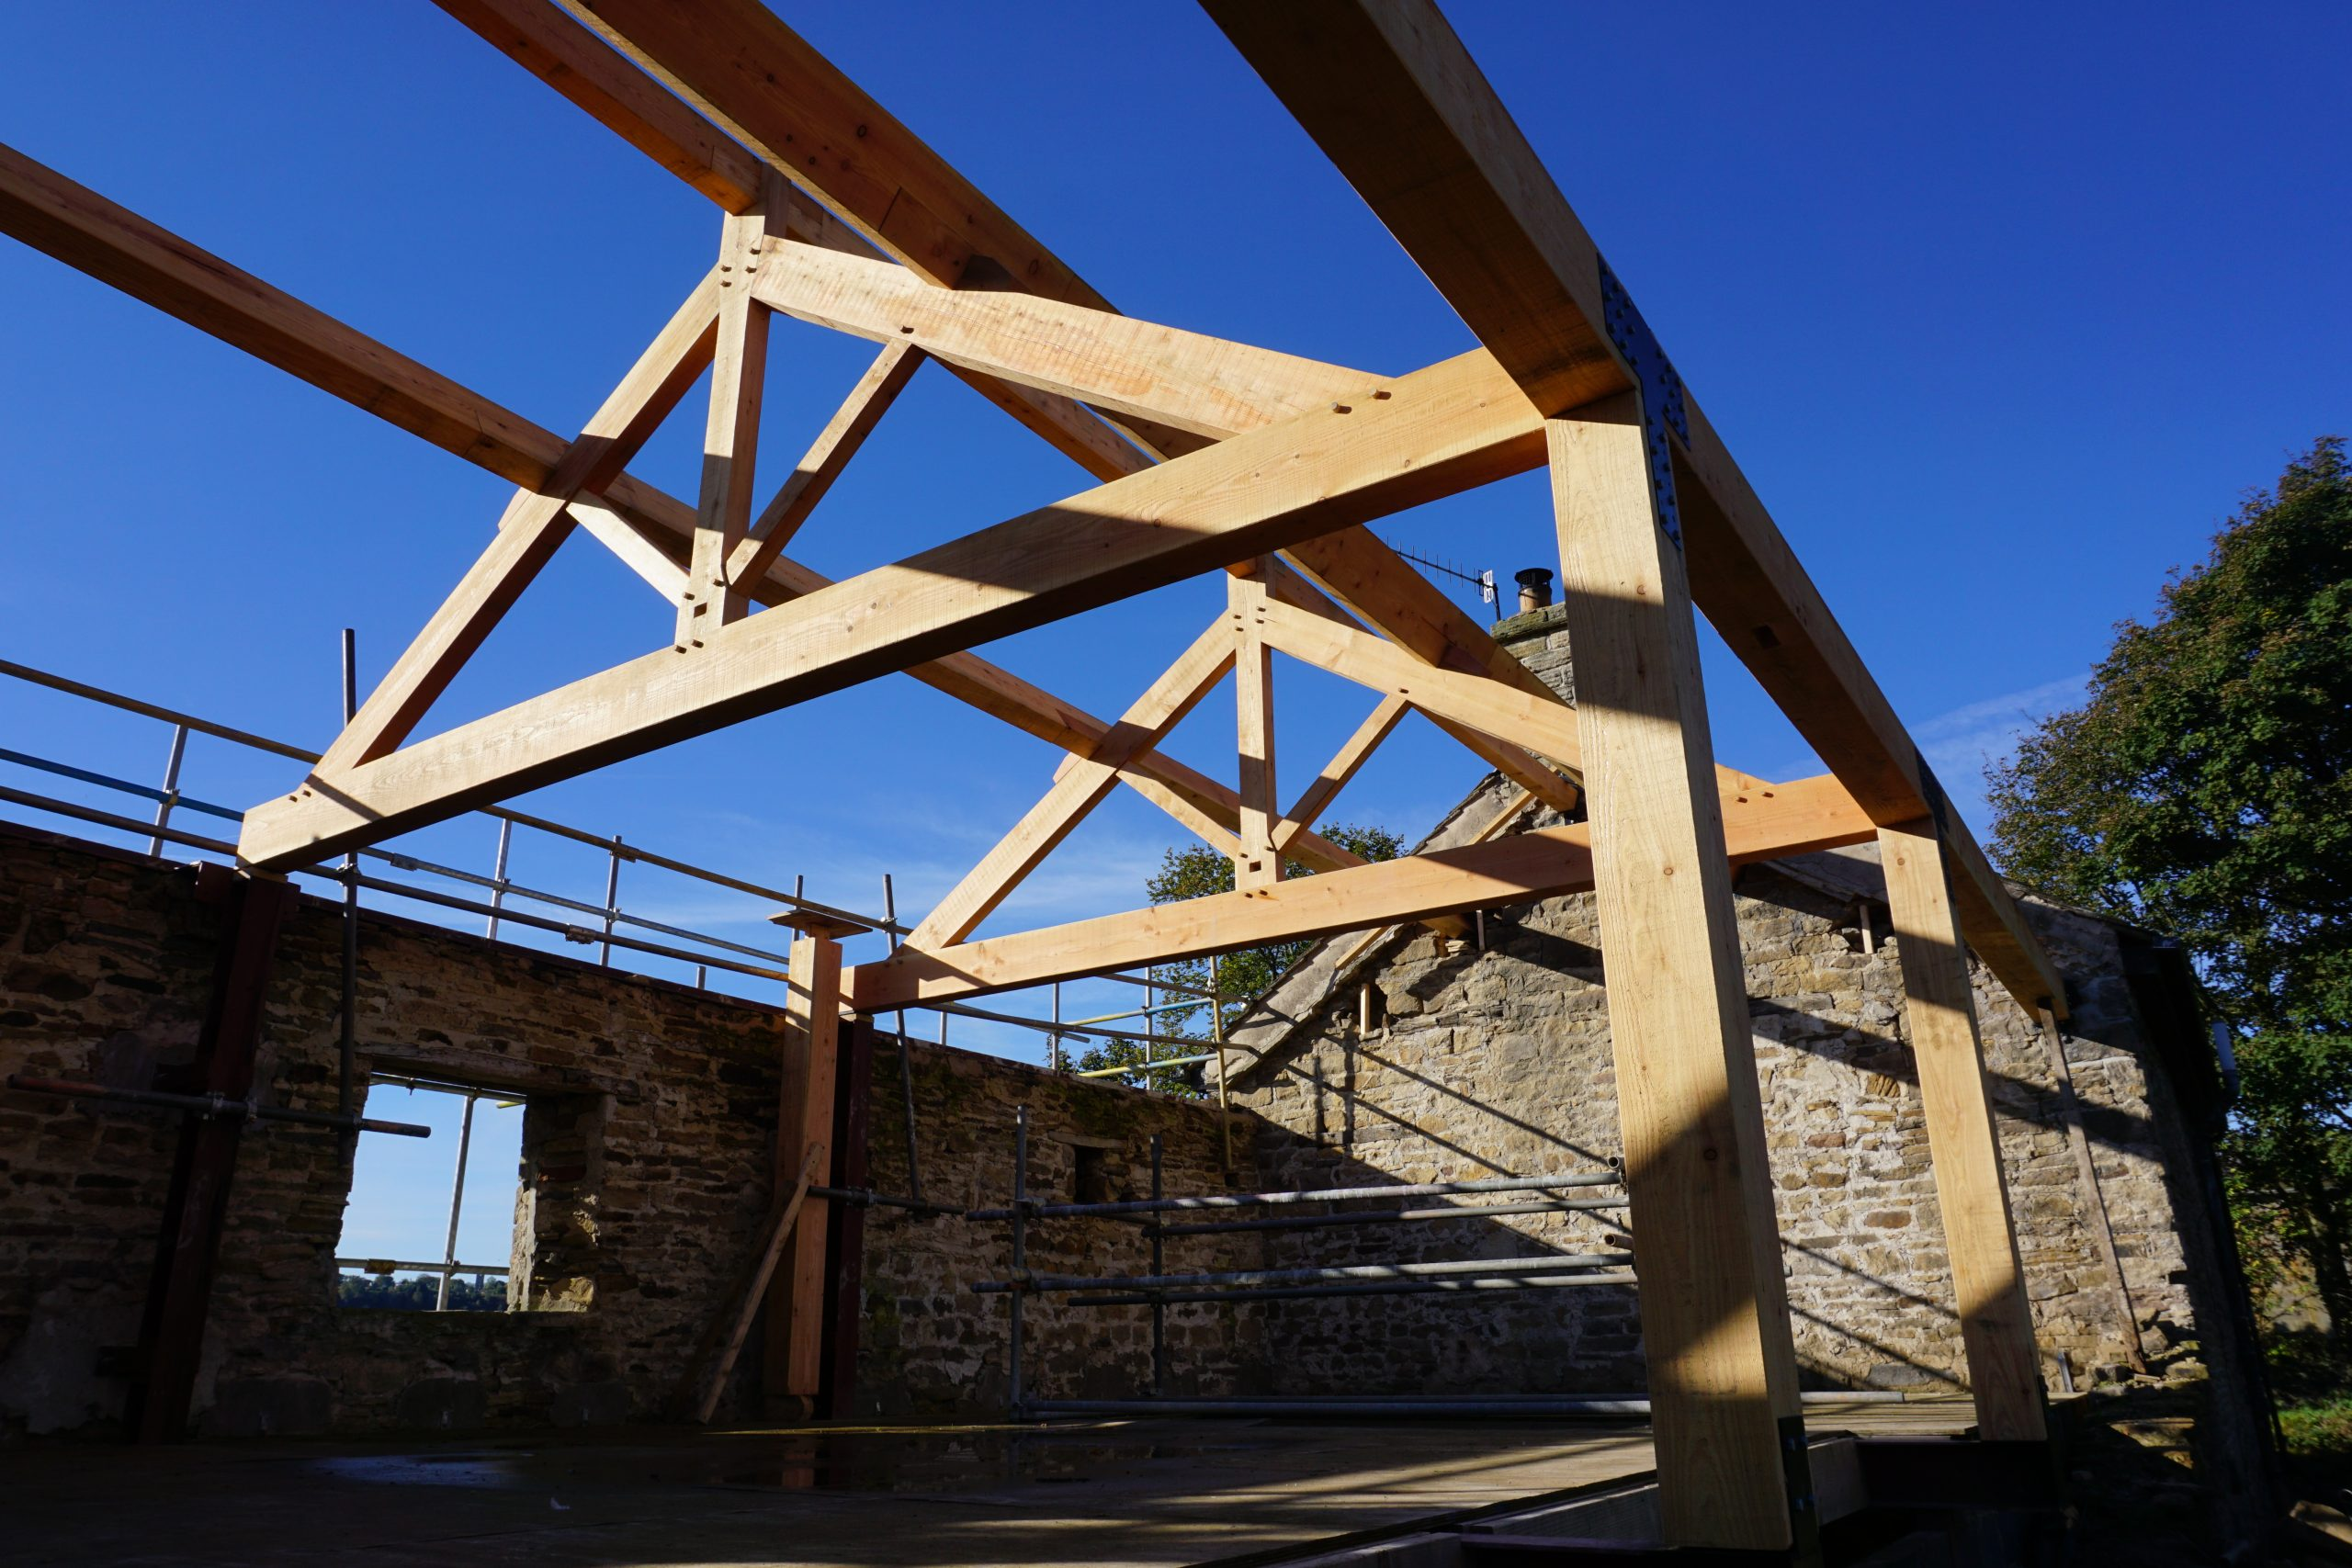 King Post Trusses and Frame in Douglas Fir